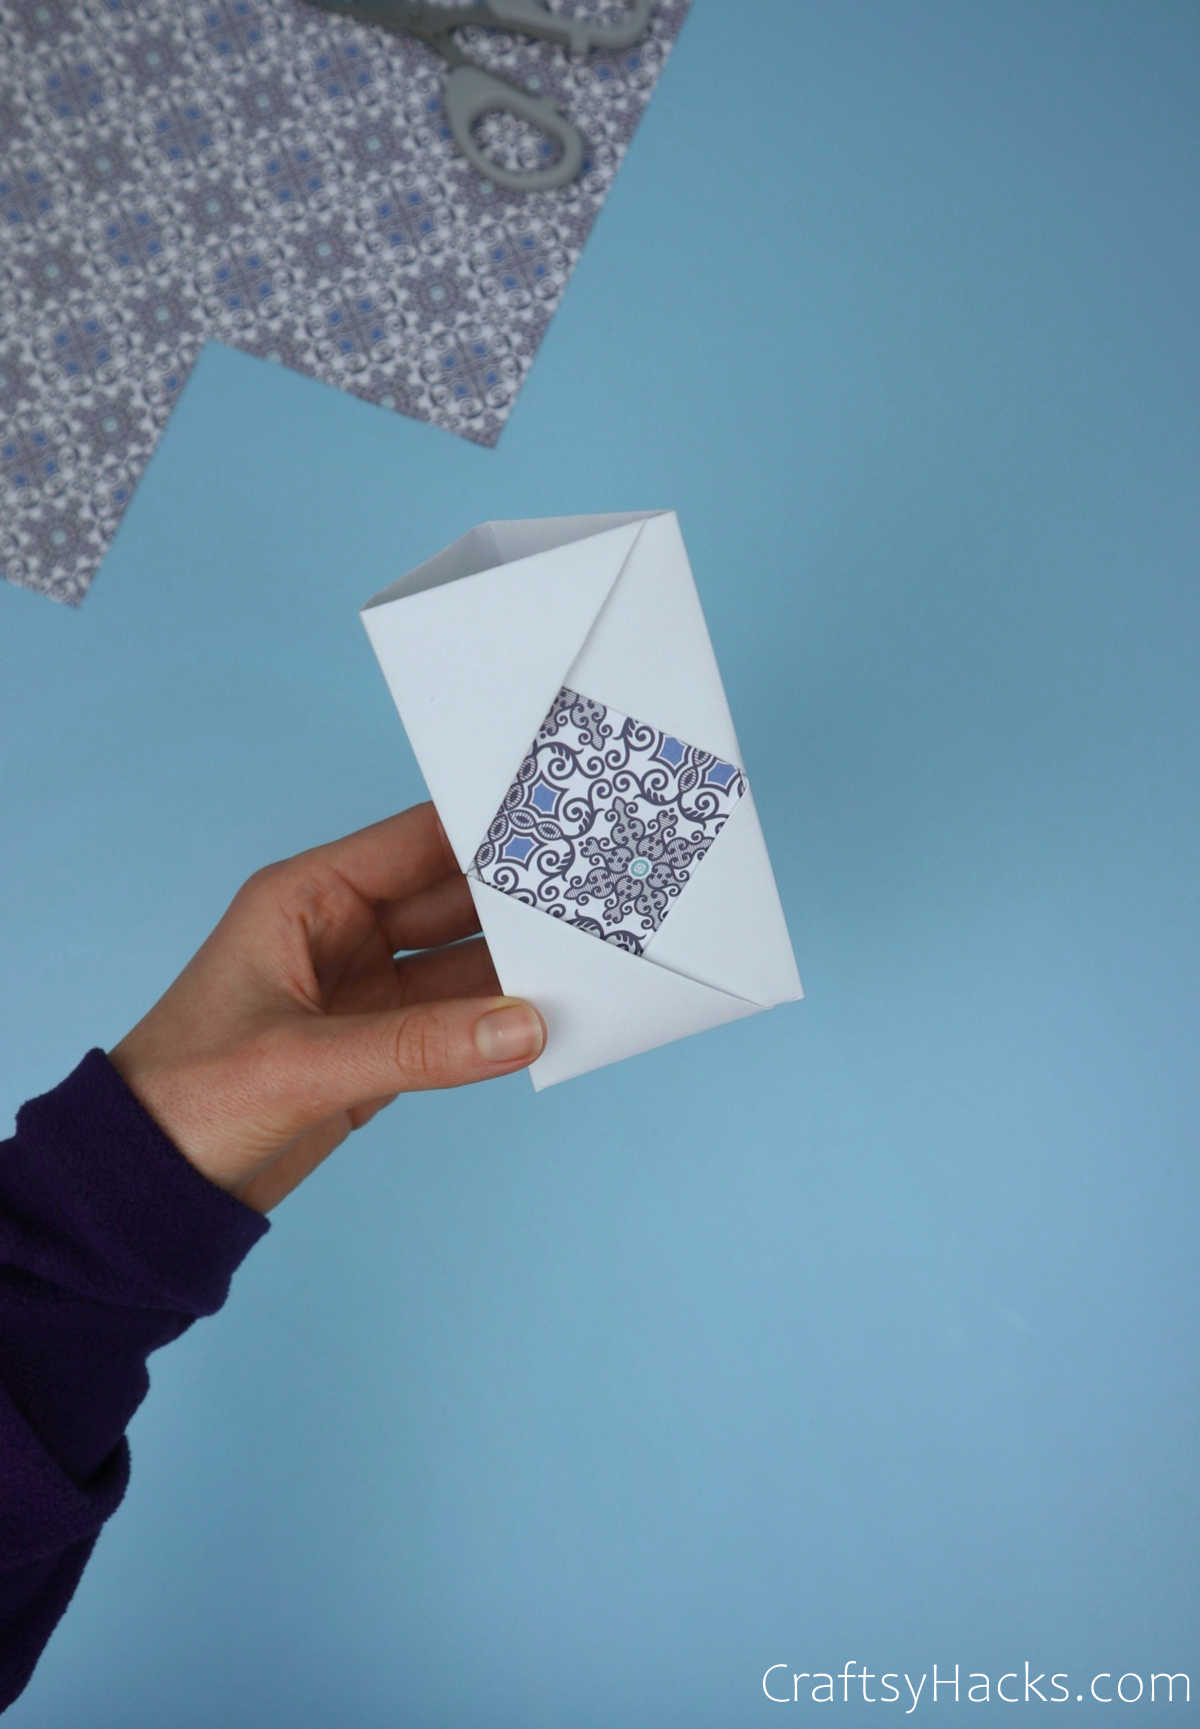 folded paper with pattern